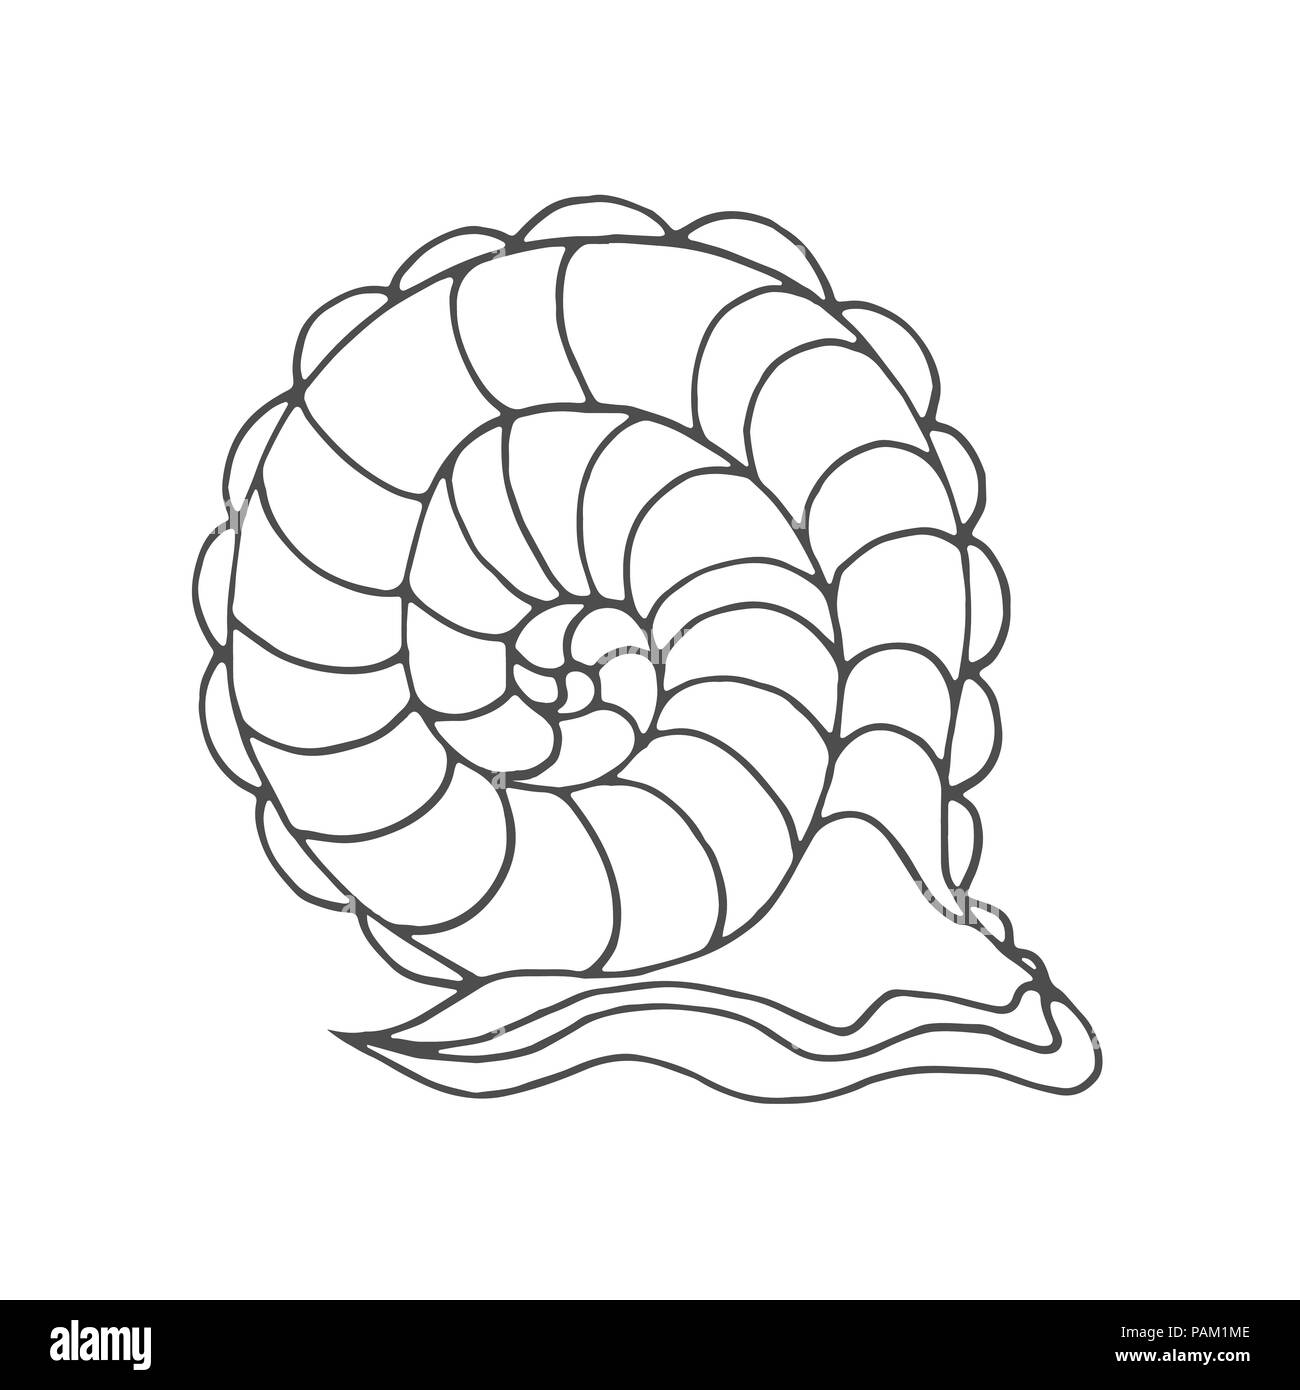 Snail coloring page for children and adults. Pattern isolated ...